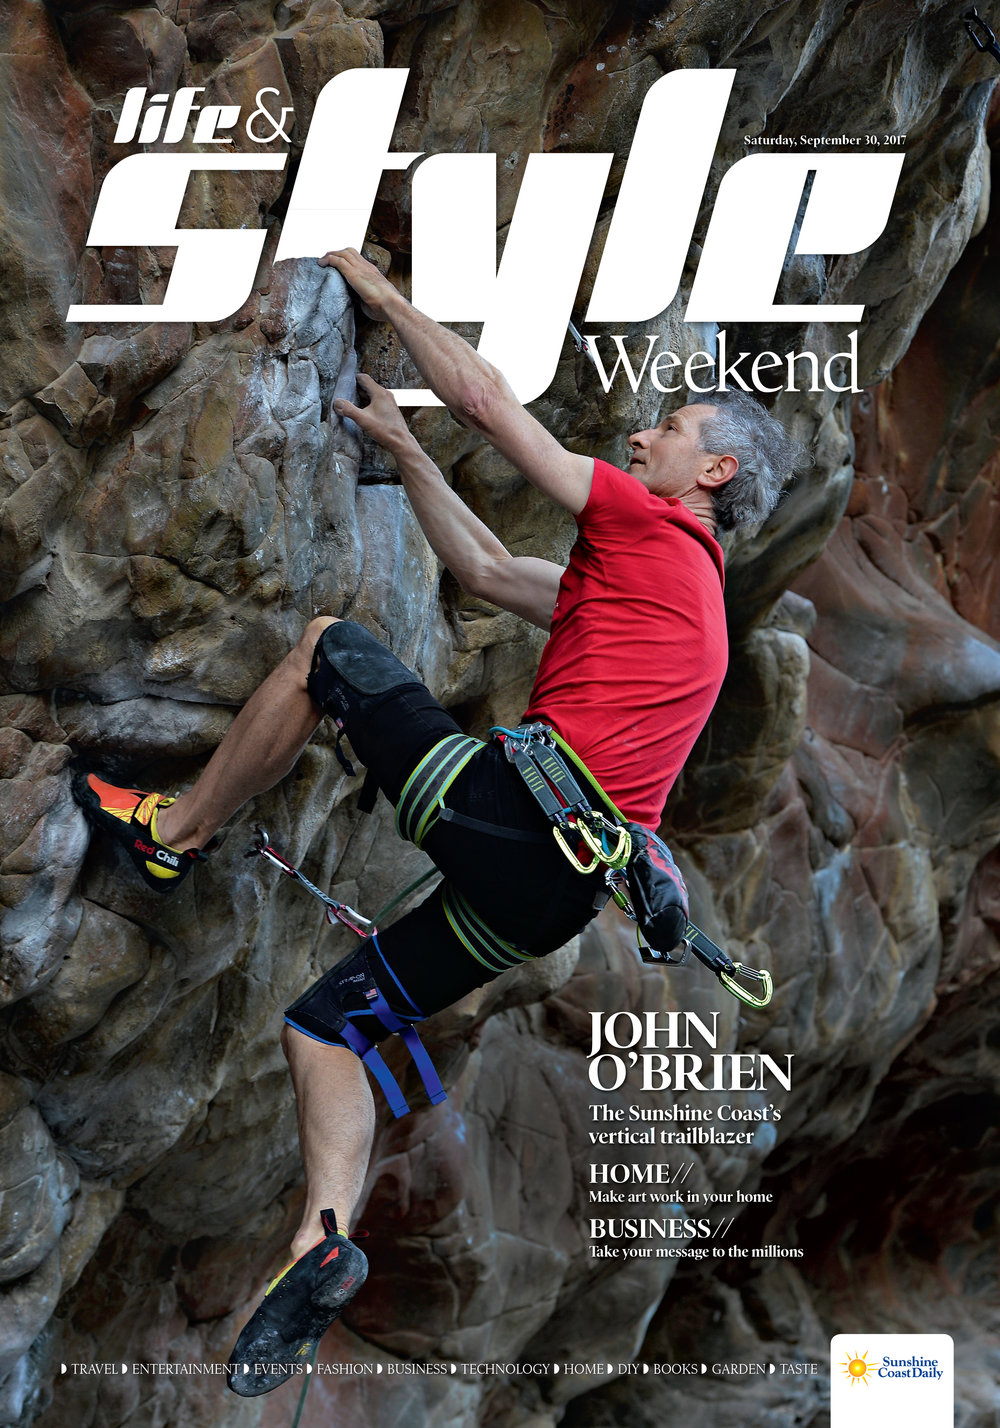 John O'Brien - the Sunshine Coast's vertical trail blazer